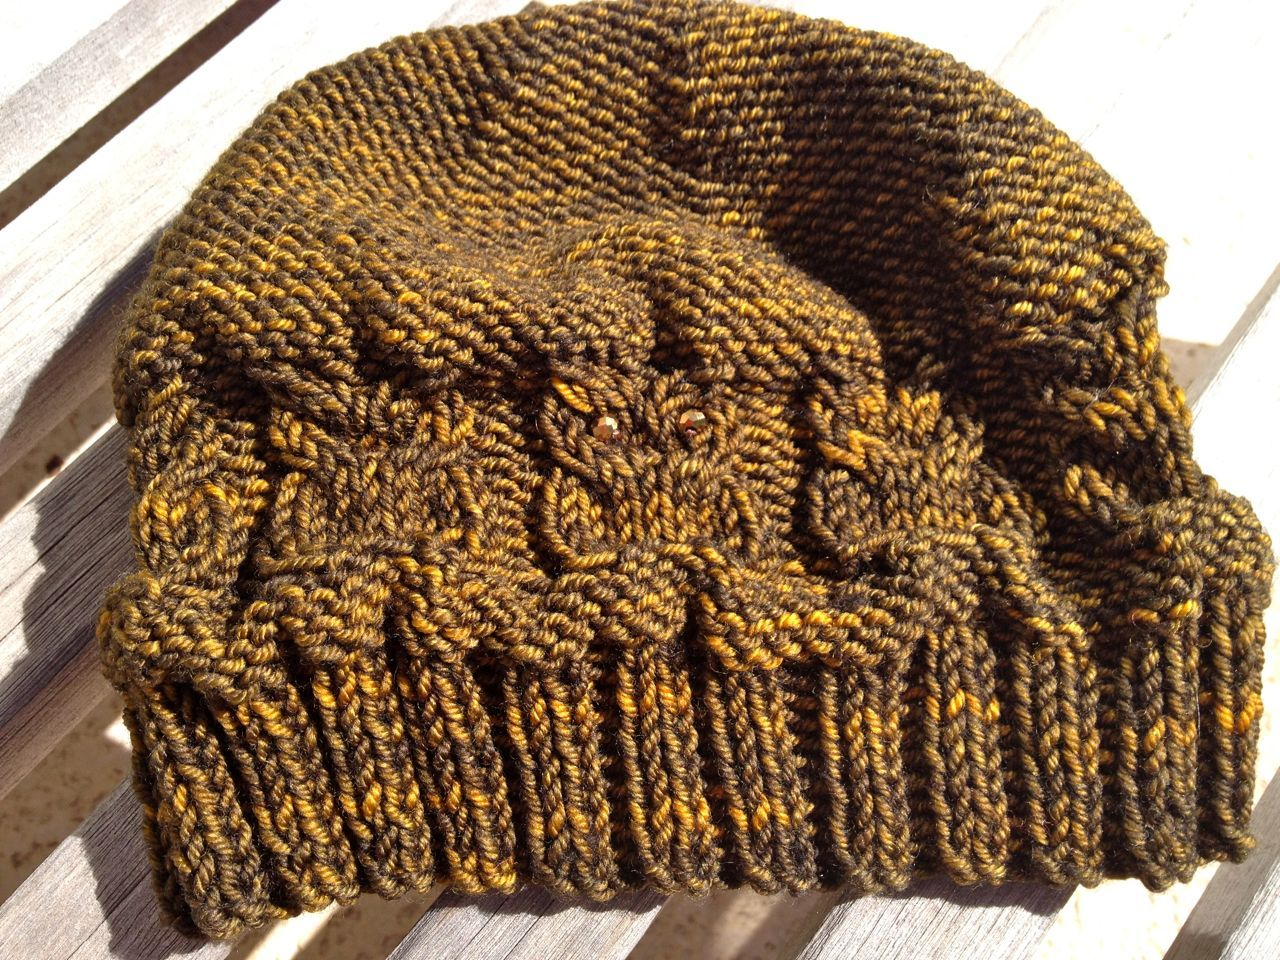 Woot hoot hat a free pattern knit hats headbands gloves hoot hat a free pattern owl hatknit bankloansurffo Image collections